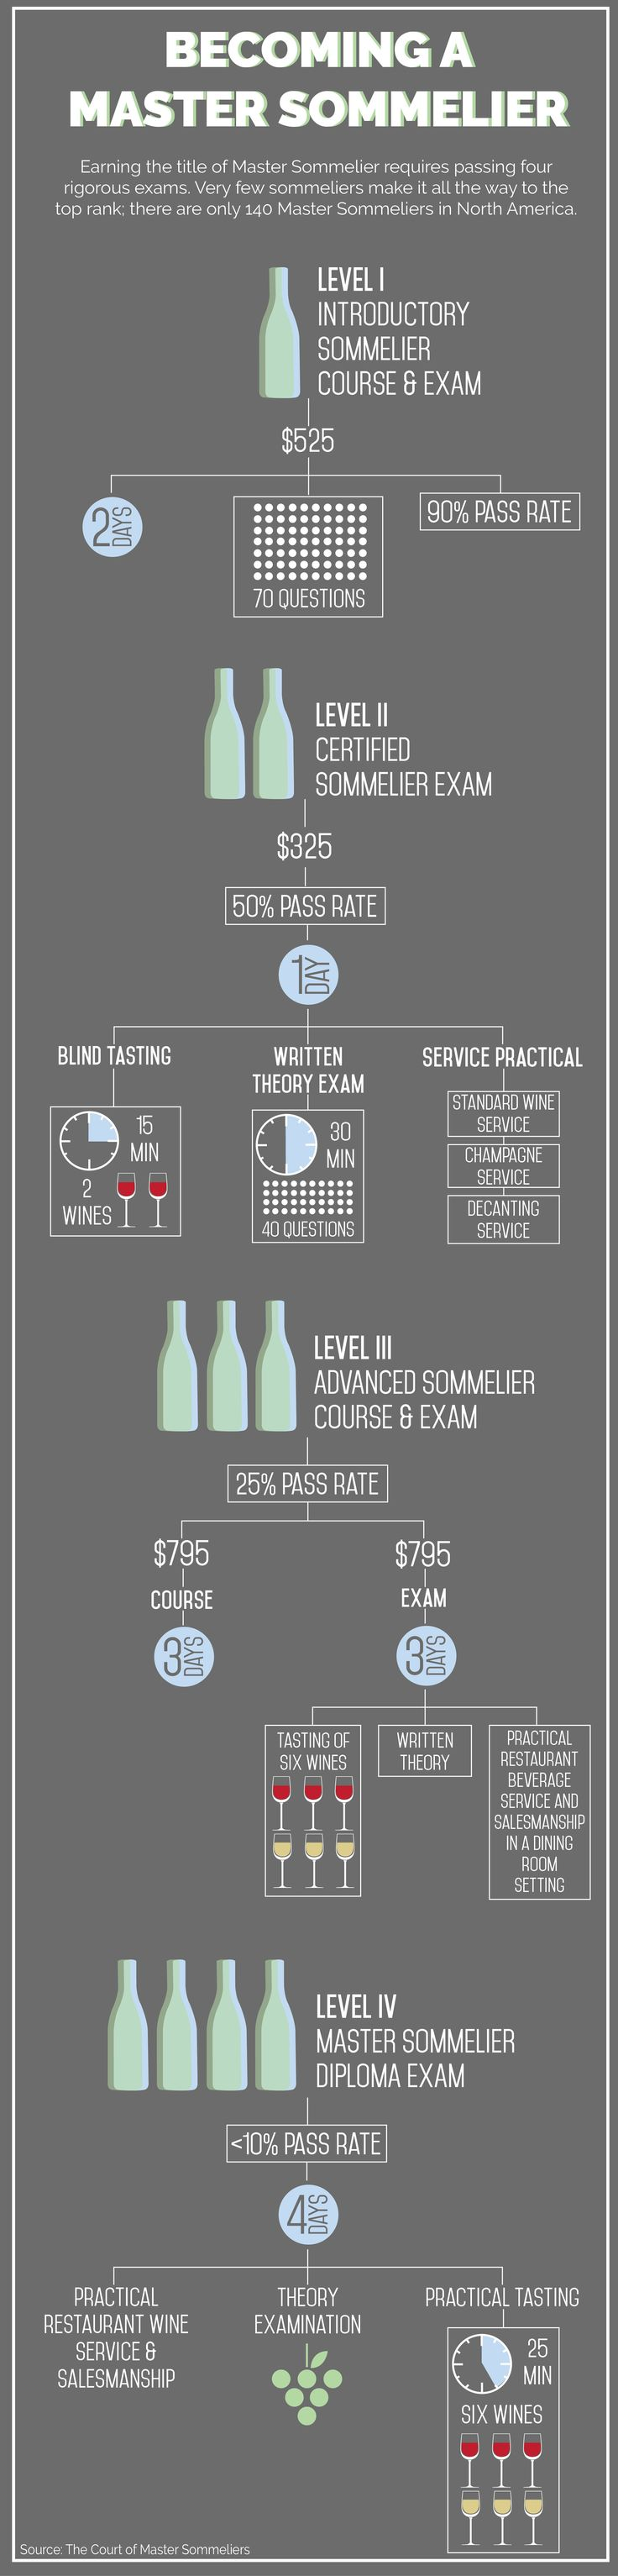 How to become a Master Sommelier.